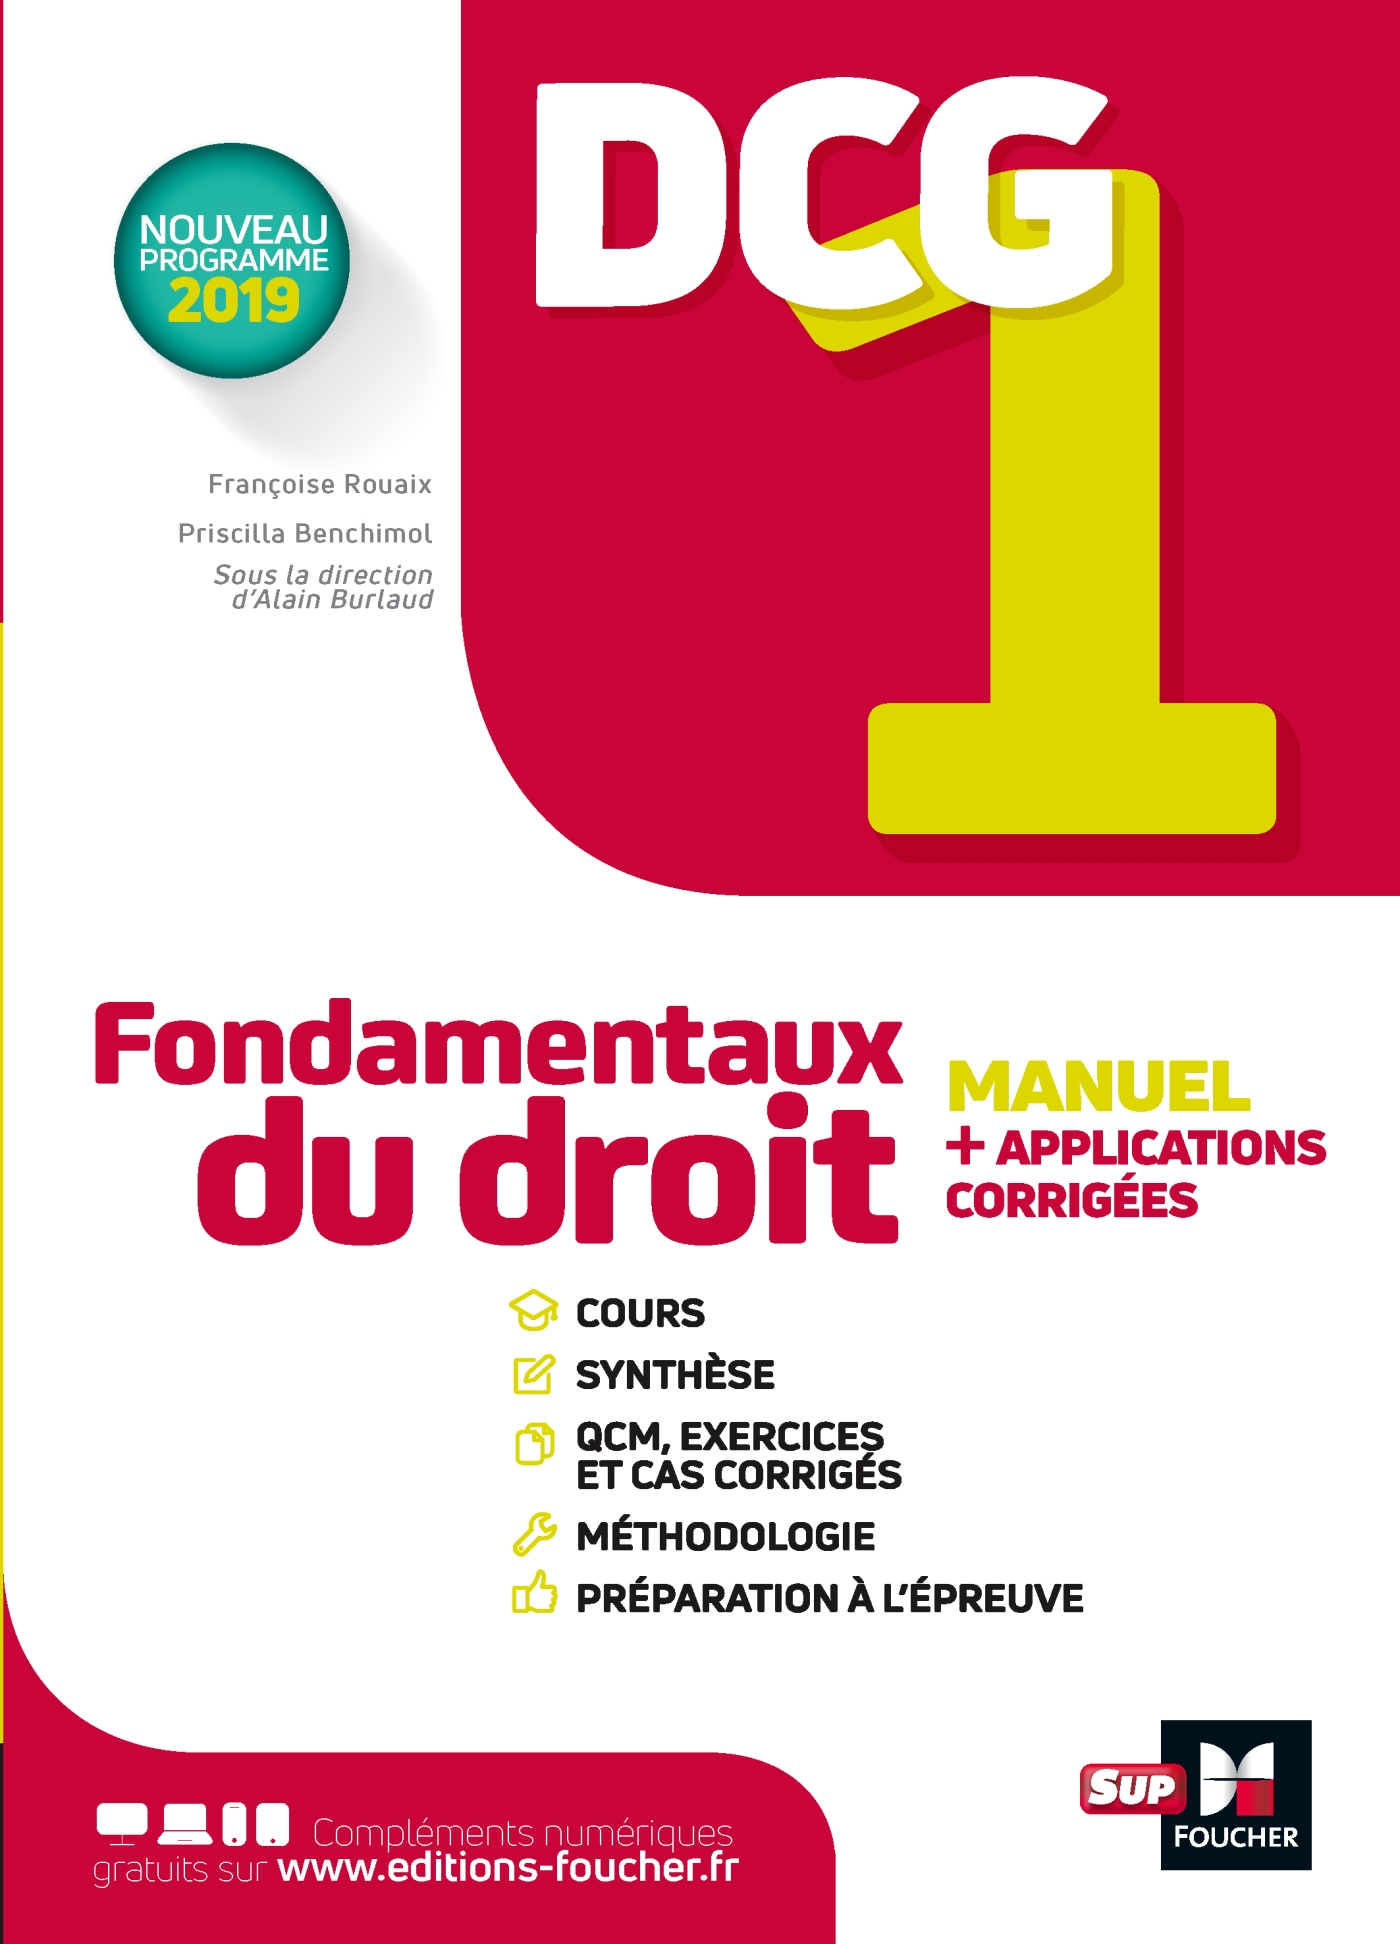 DCG 1 - Fondamentaux du droit - Manuel et applications